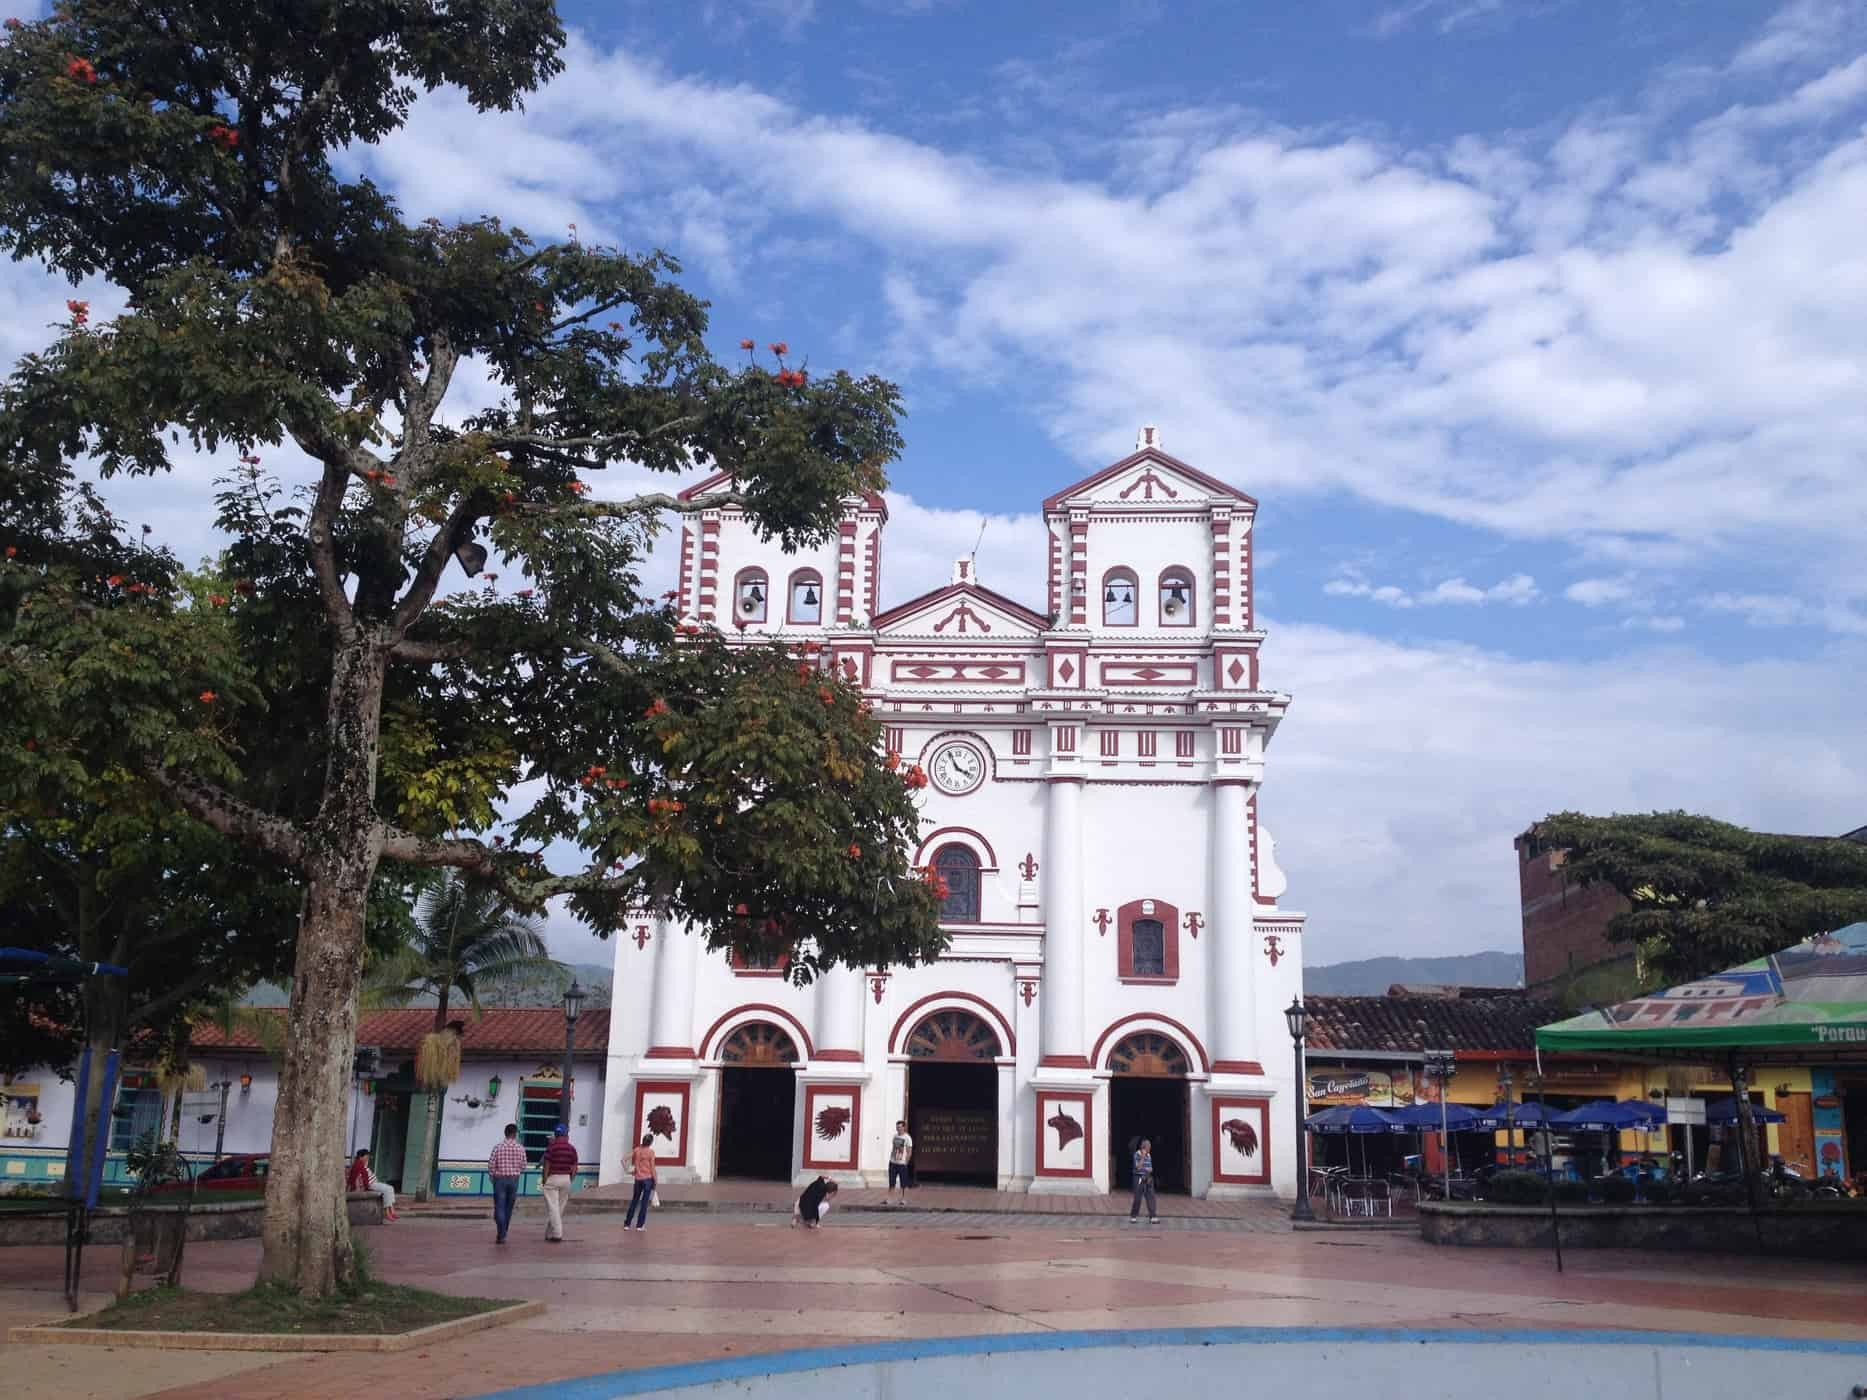 Church in Guatapé, Colombia.